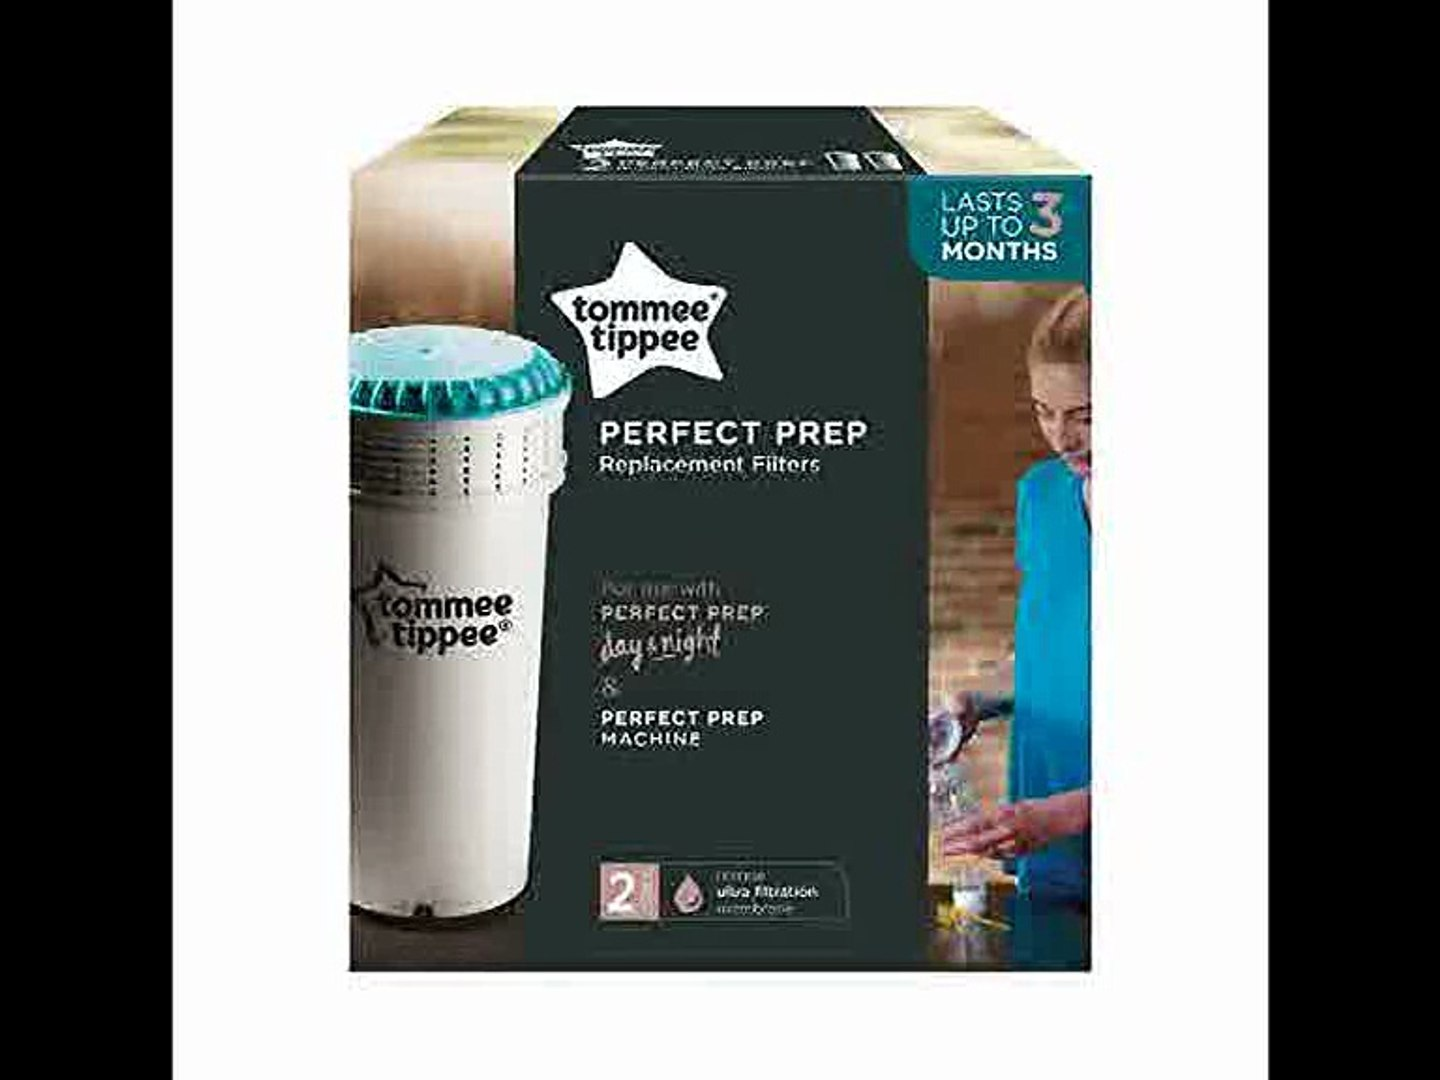 Tommee Tippee Closer to Nature Gesundheitsset